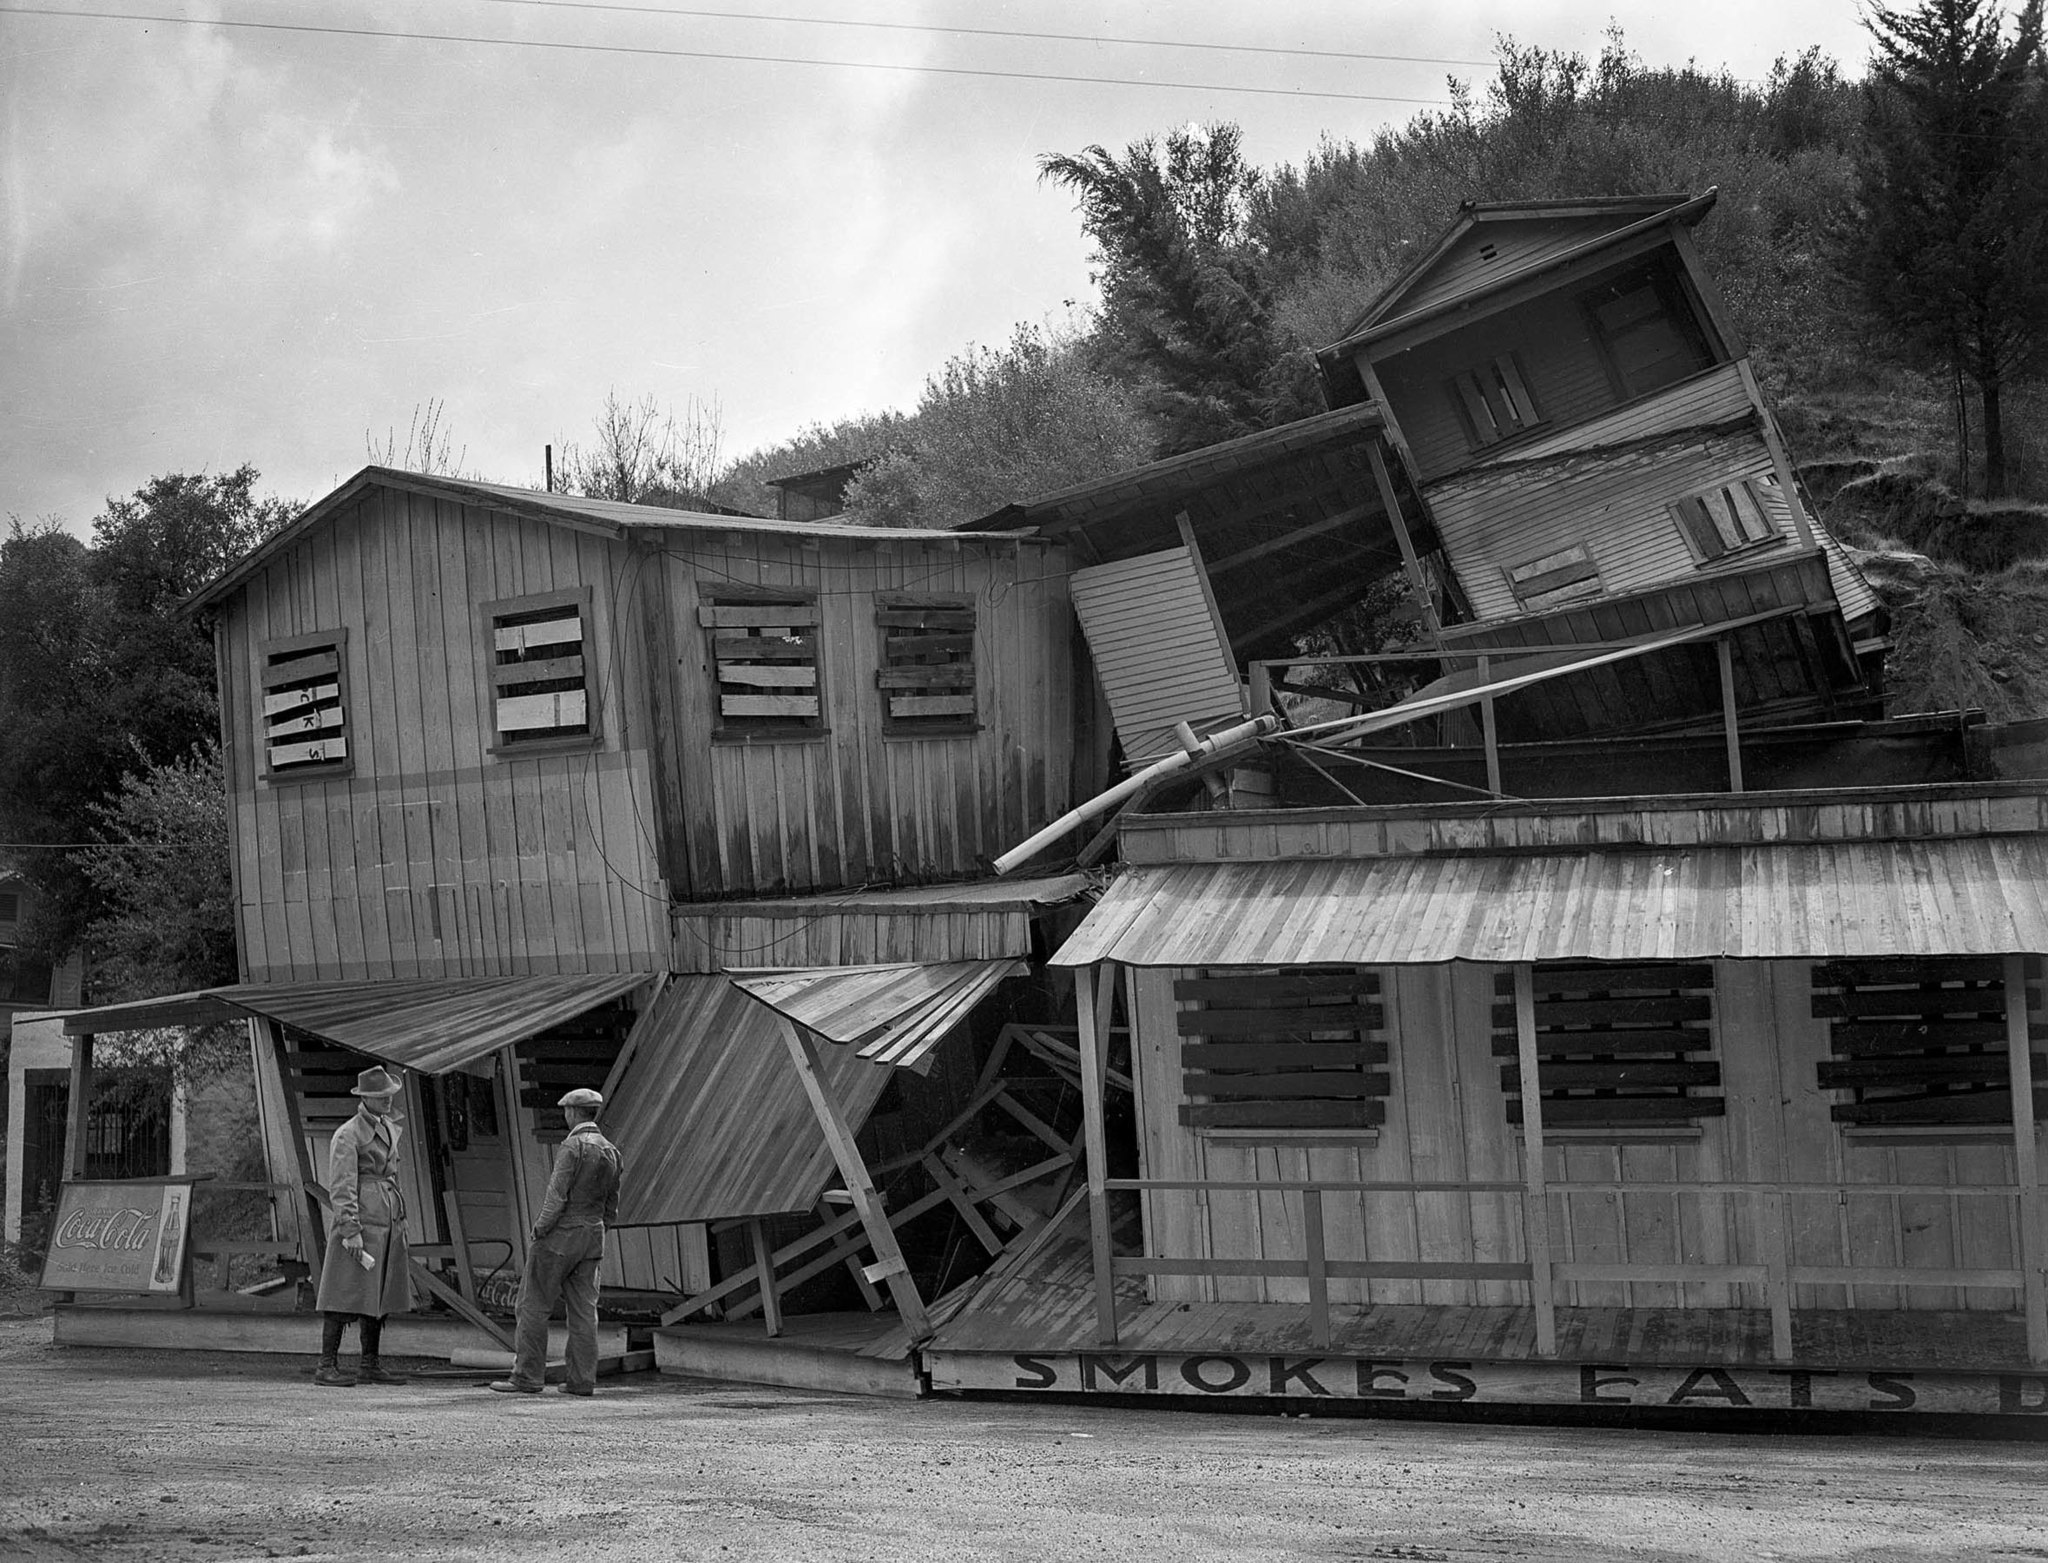 March 1, 1938: A three story structure once occupied by cafe at Cheeney Road and Topanga Canyon Road